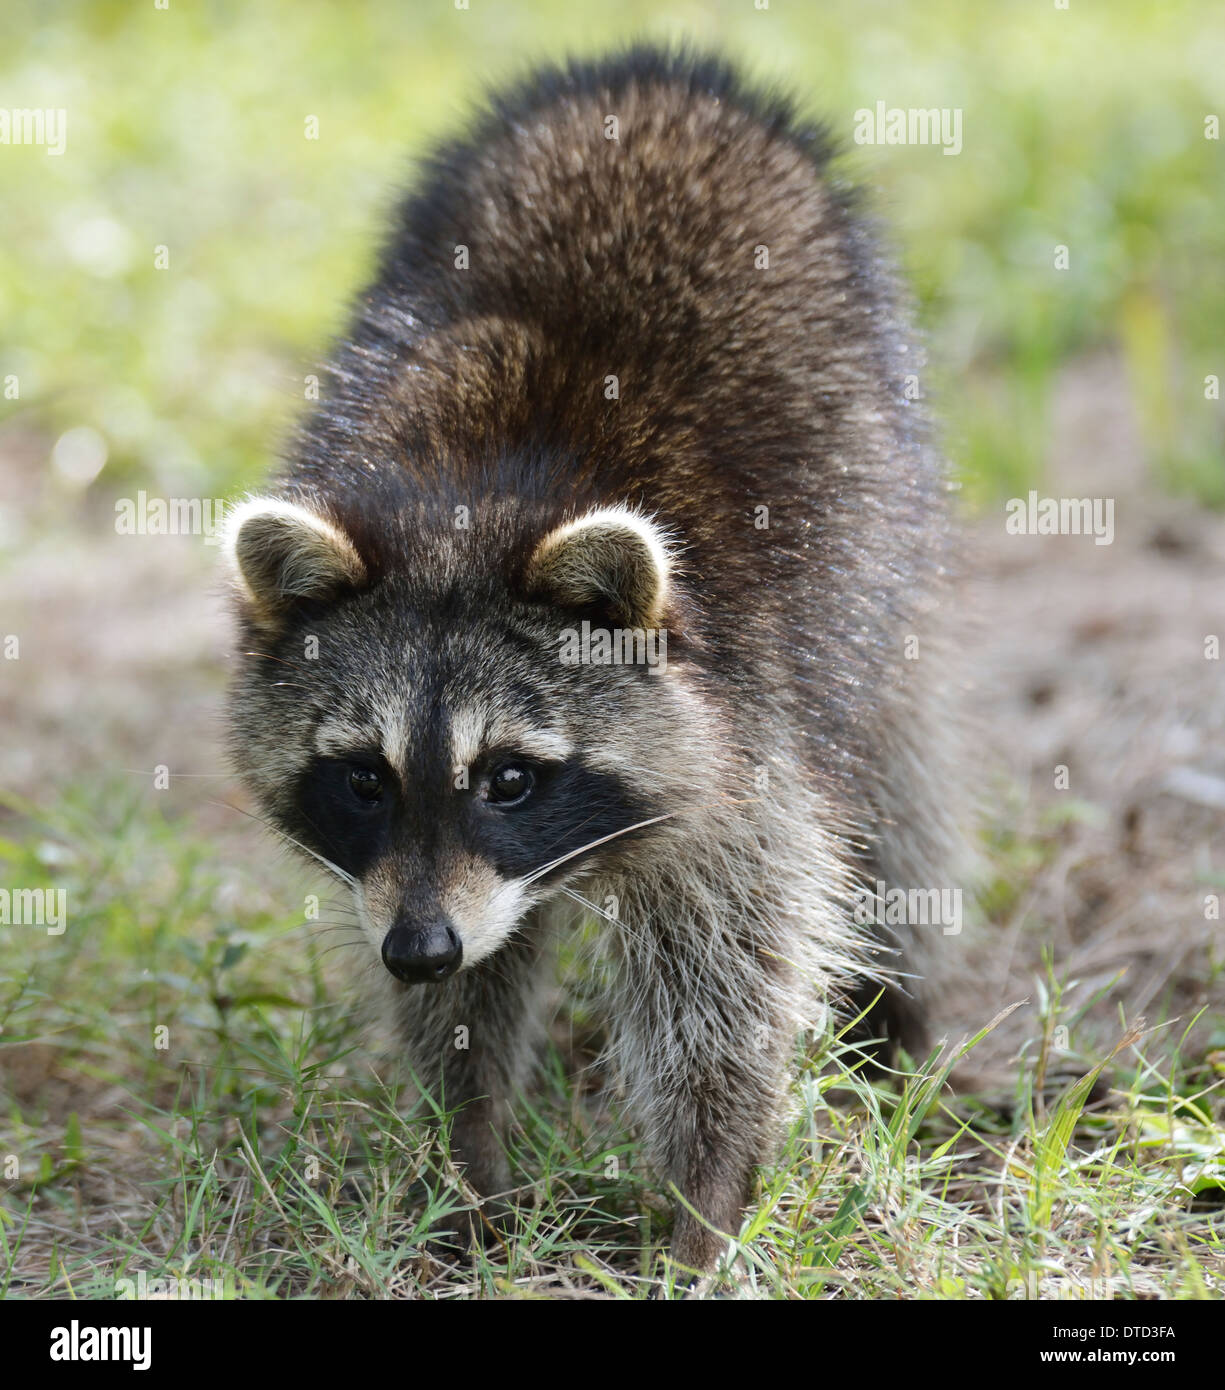 Young Raccoon,Close Up Shot - Stock Image